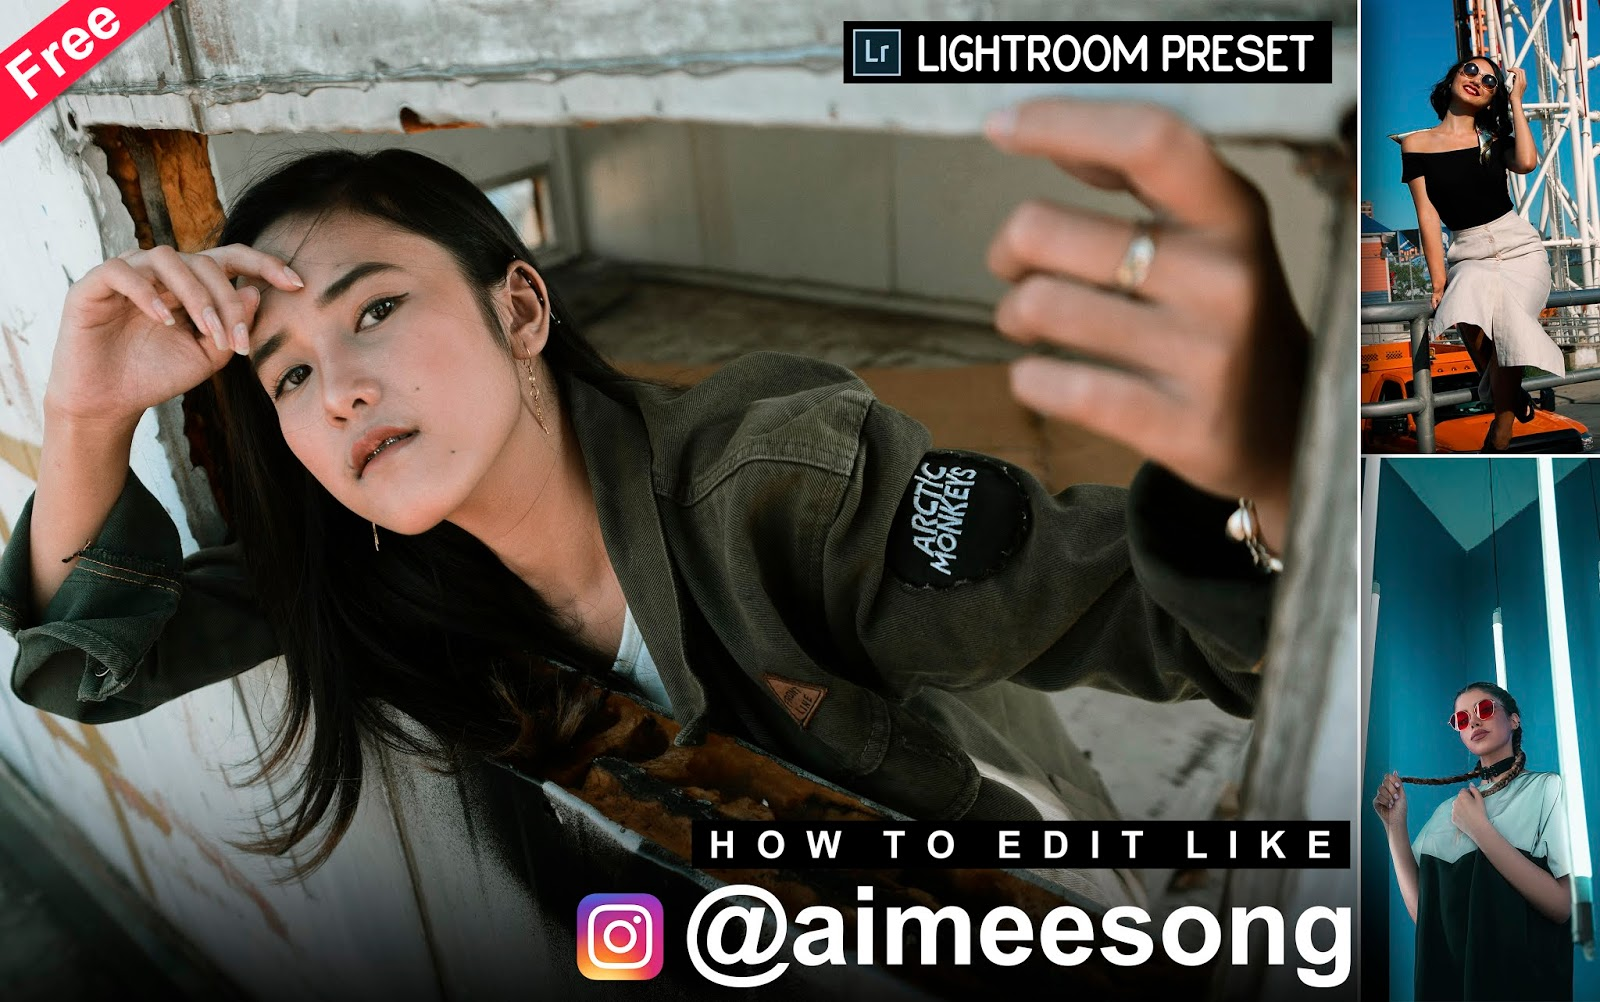 Download Aimeesong Inspired Lightroom Preset for Free | How to Edit Your Photos Like @aimeesong in Lightroom